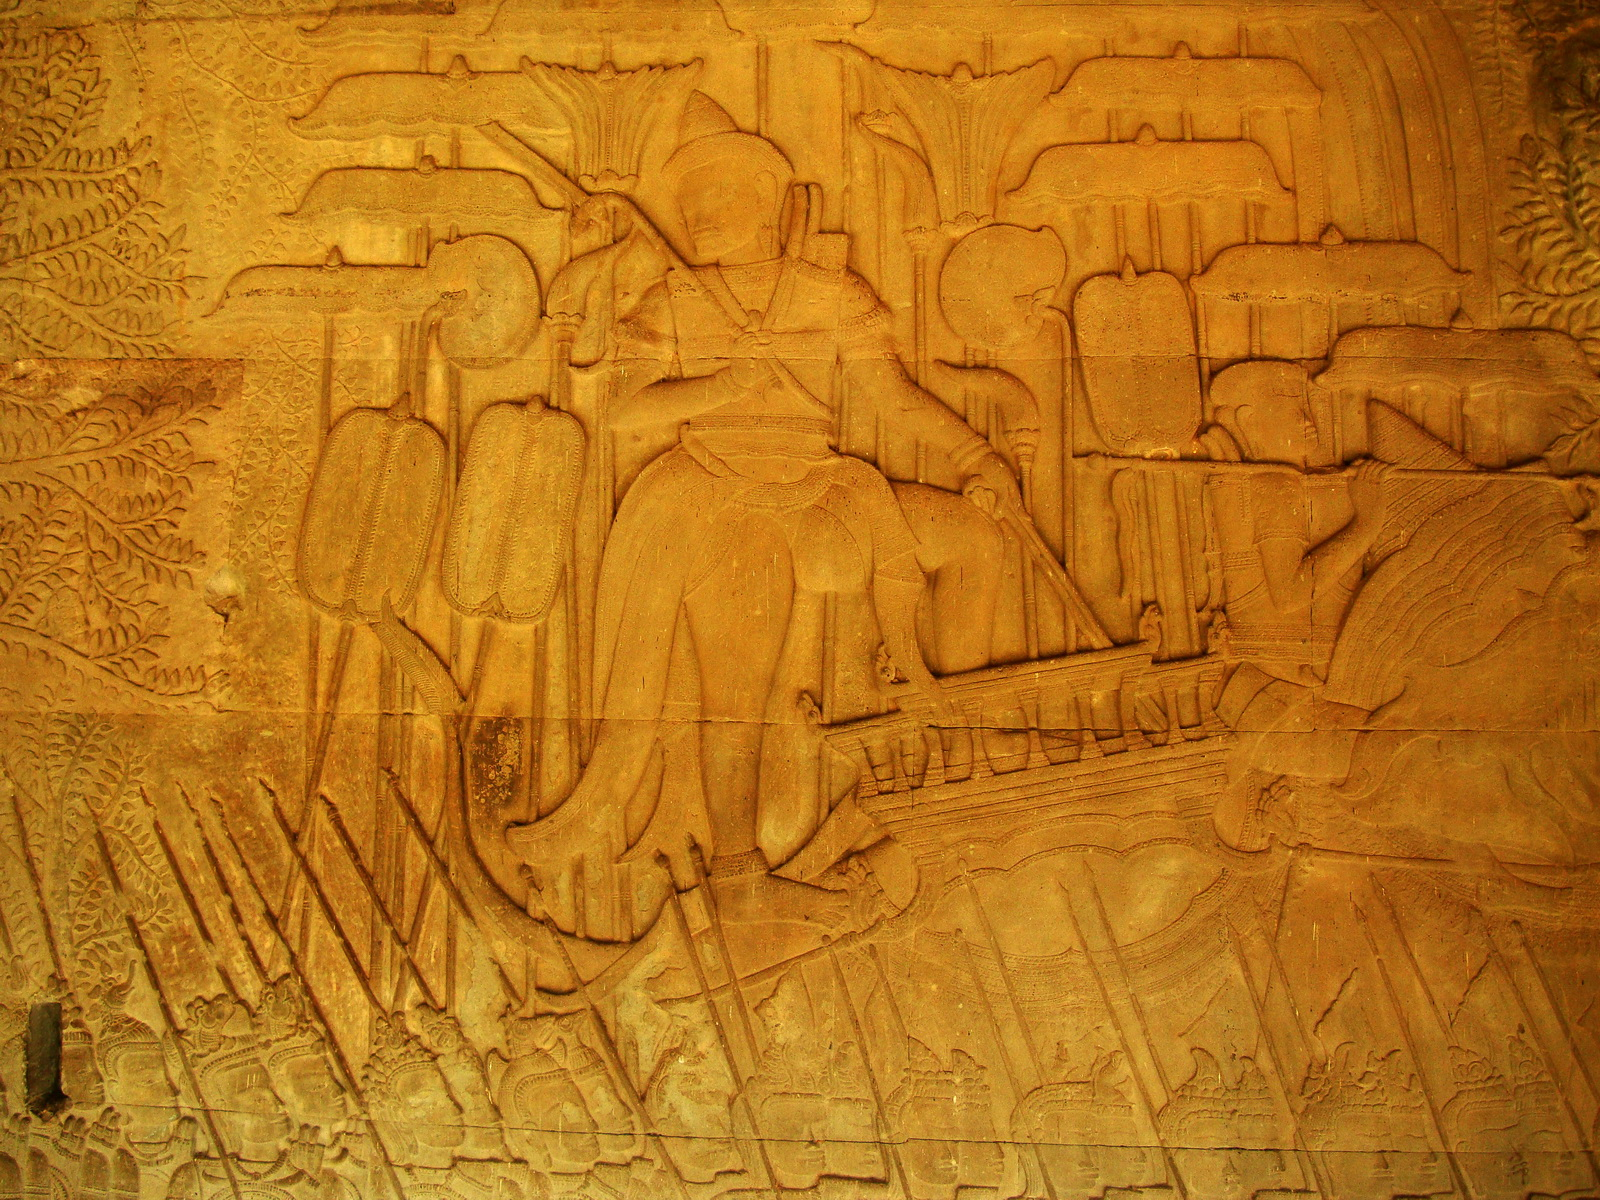 Angkor Wat Bas relief S Gallery W Wing Historic Procession 072